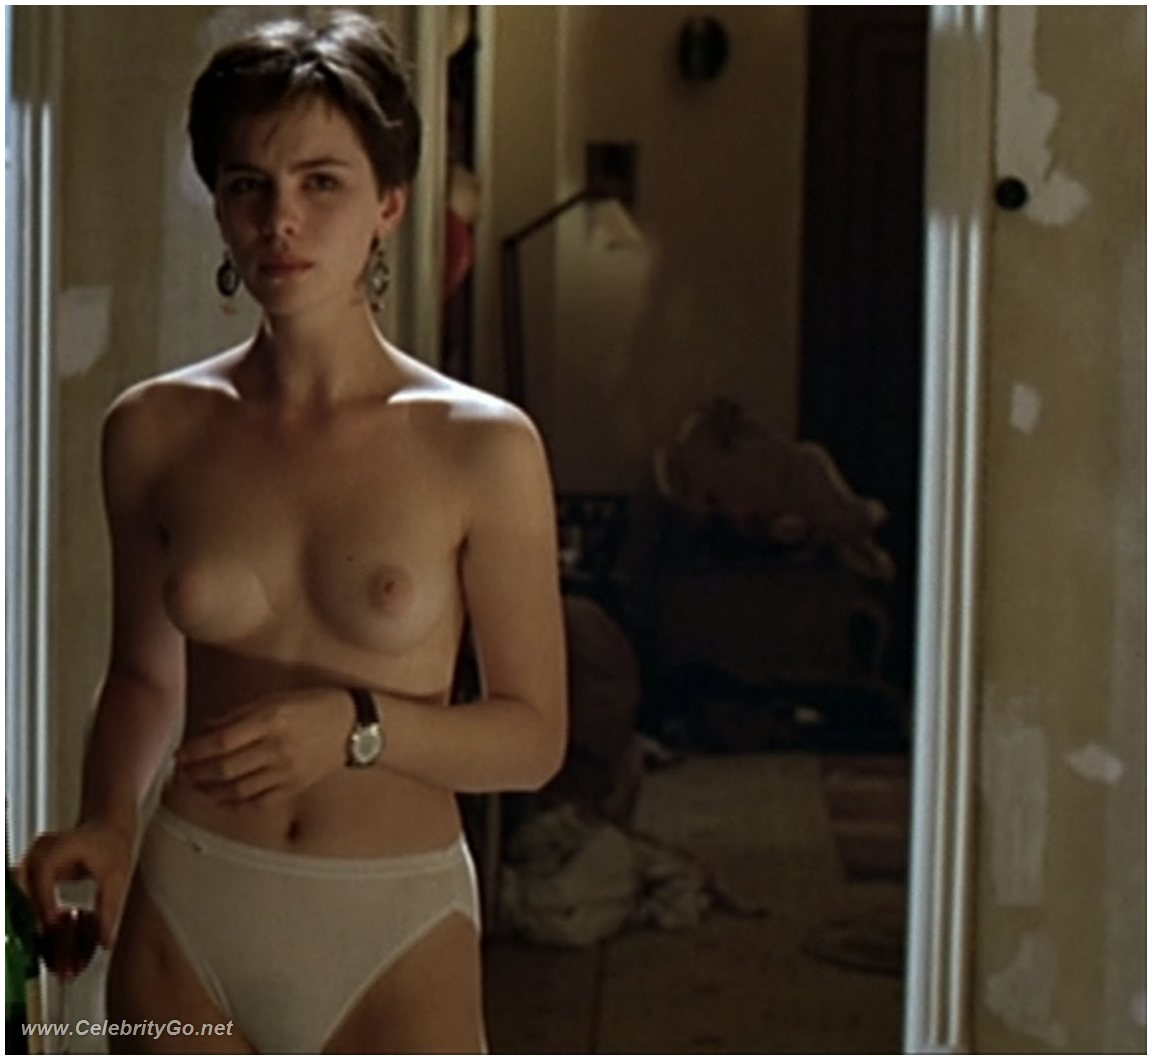 Kate beckinsale nude video gorgeous!!!